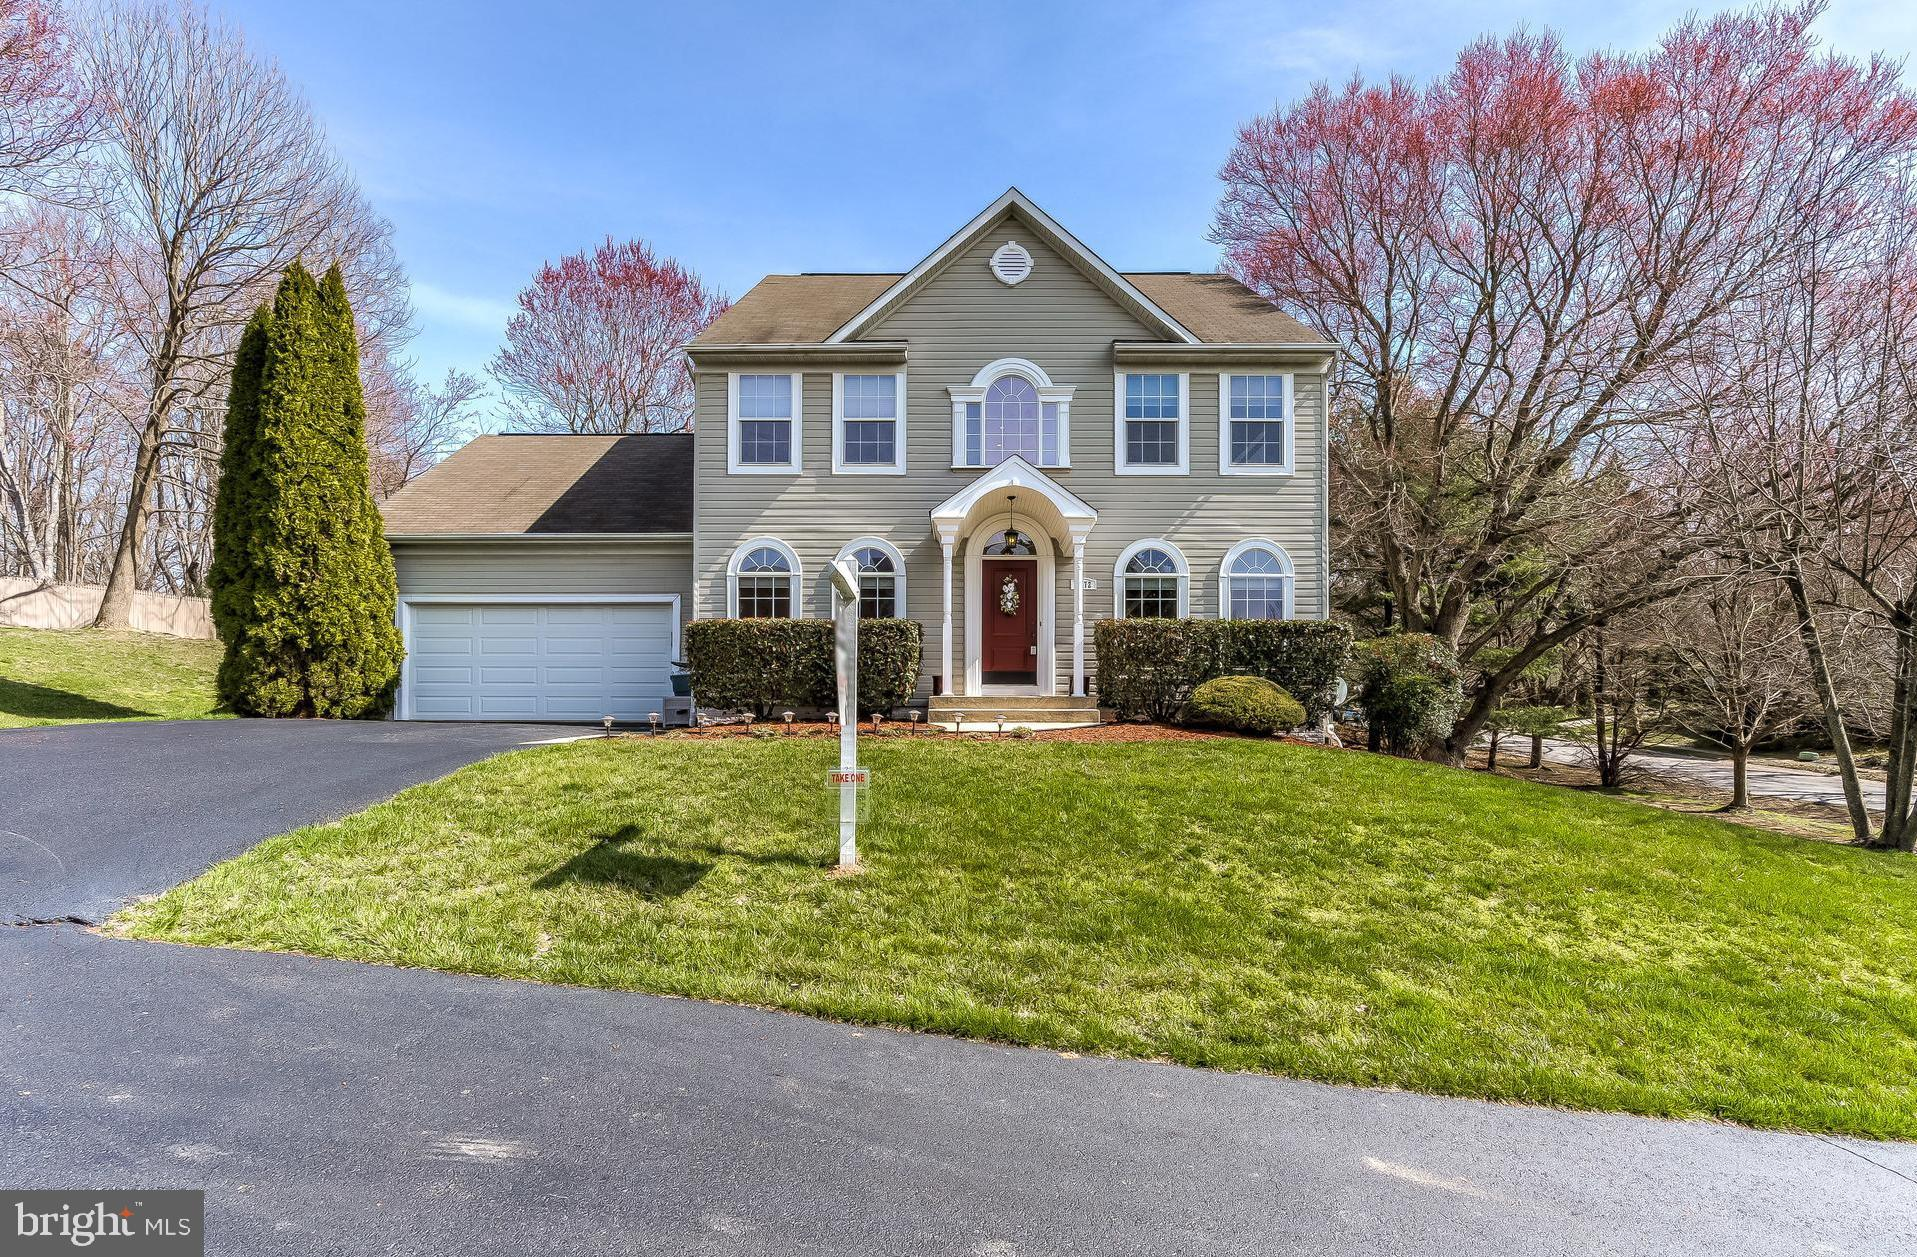 9772 OWEN BROWN ROAD, COLUMBIA, MD 21045